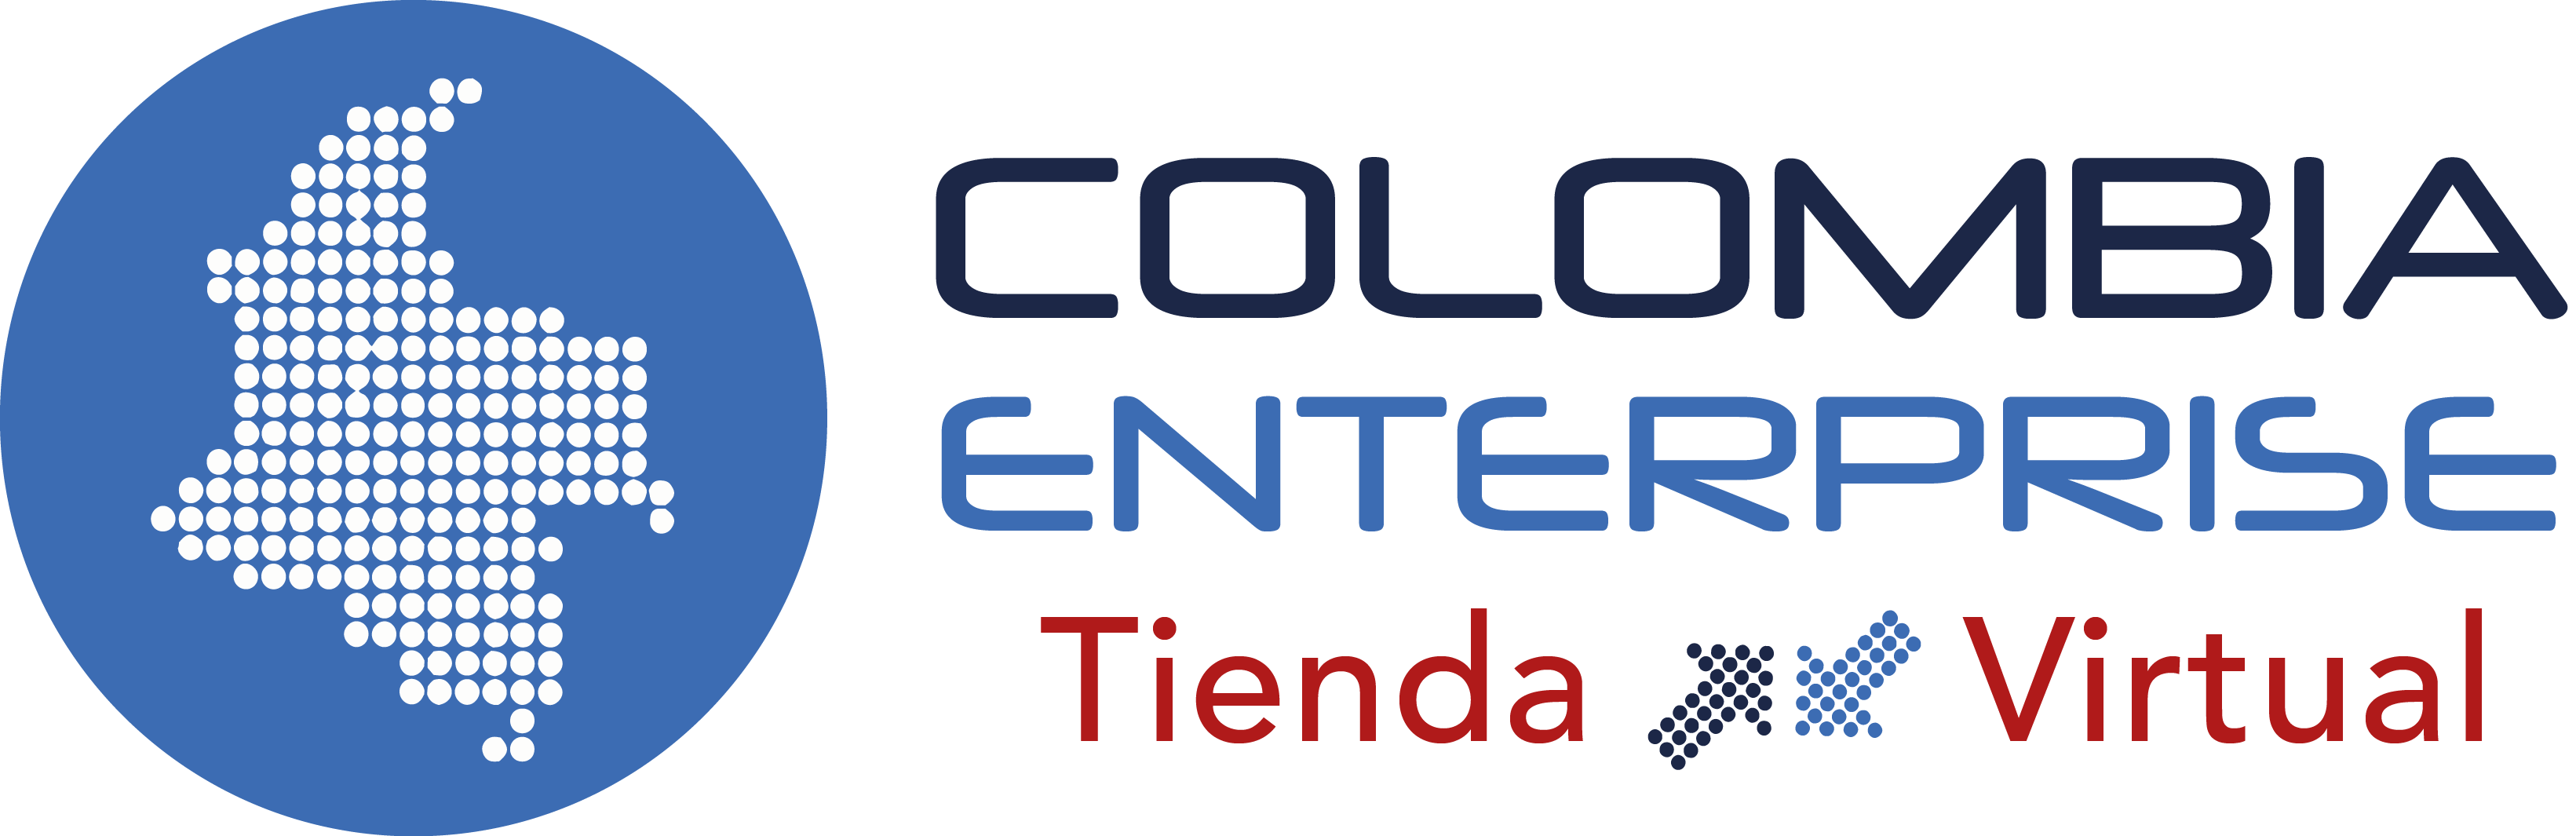 Colombia Enterprise Ltda